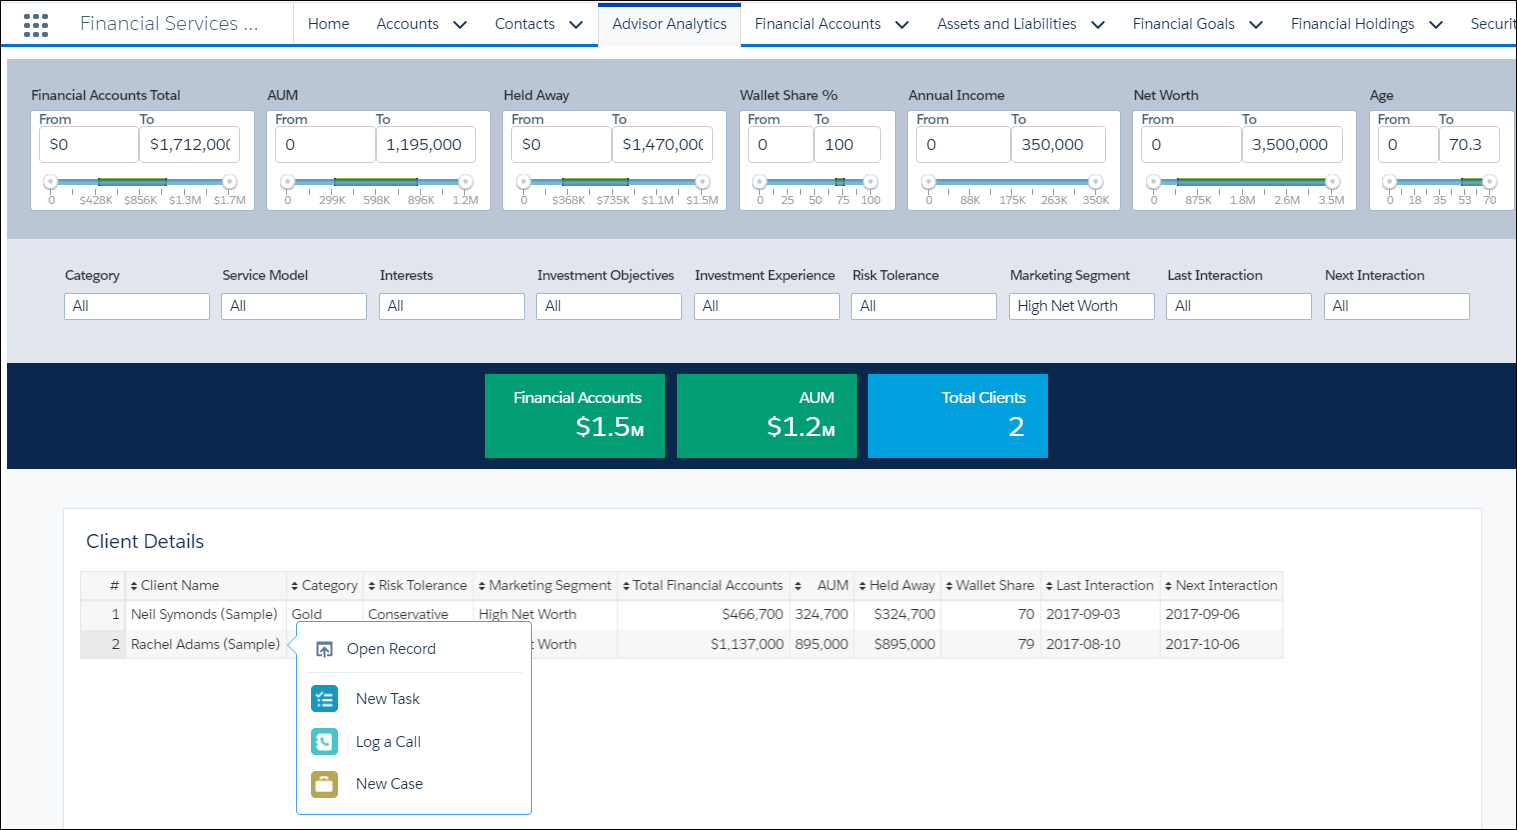 Screen shot showing the Advisor Analytics view with the Client List tab highlighted.